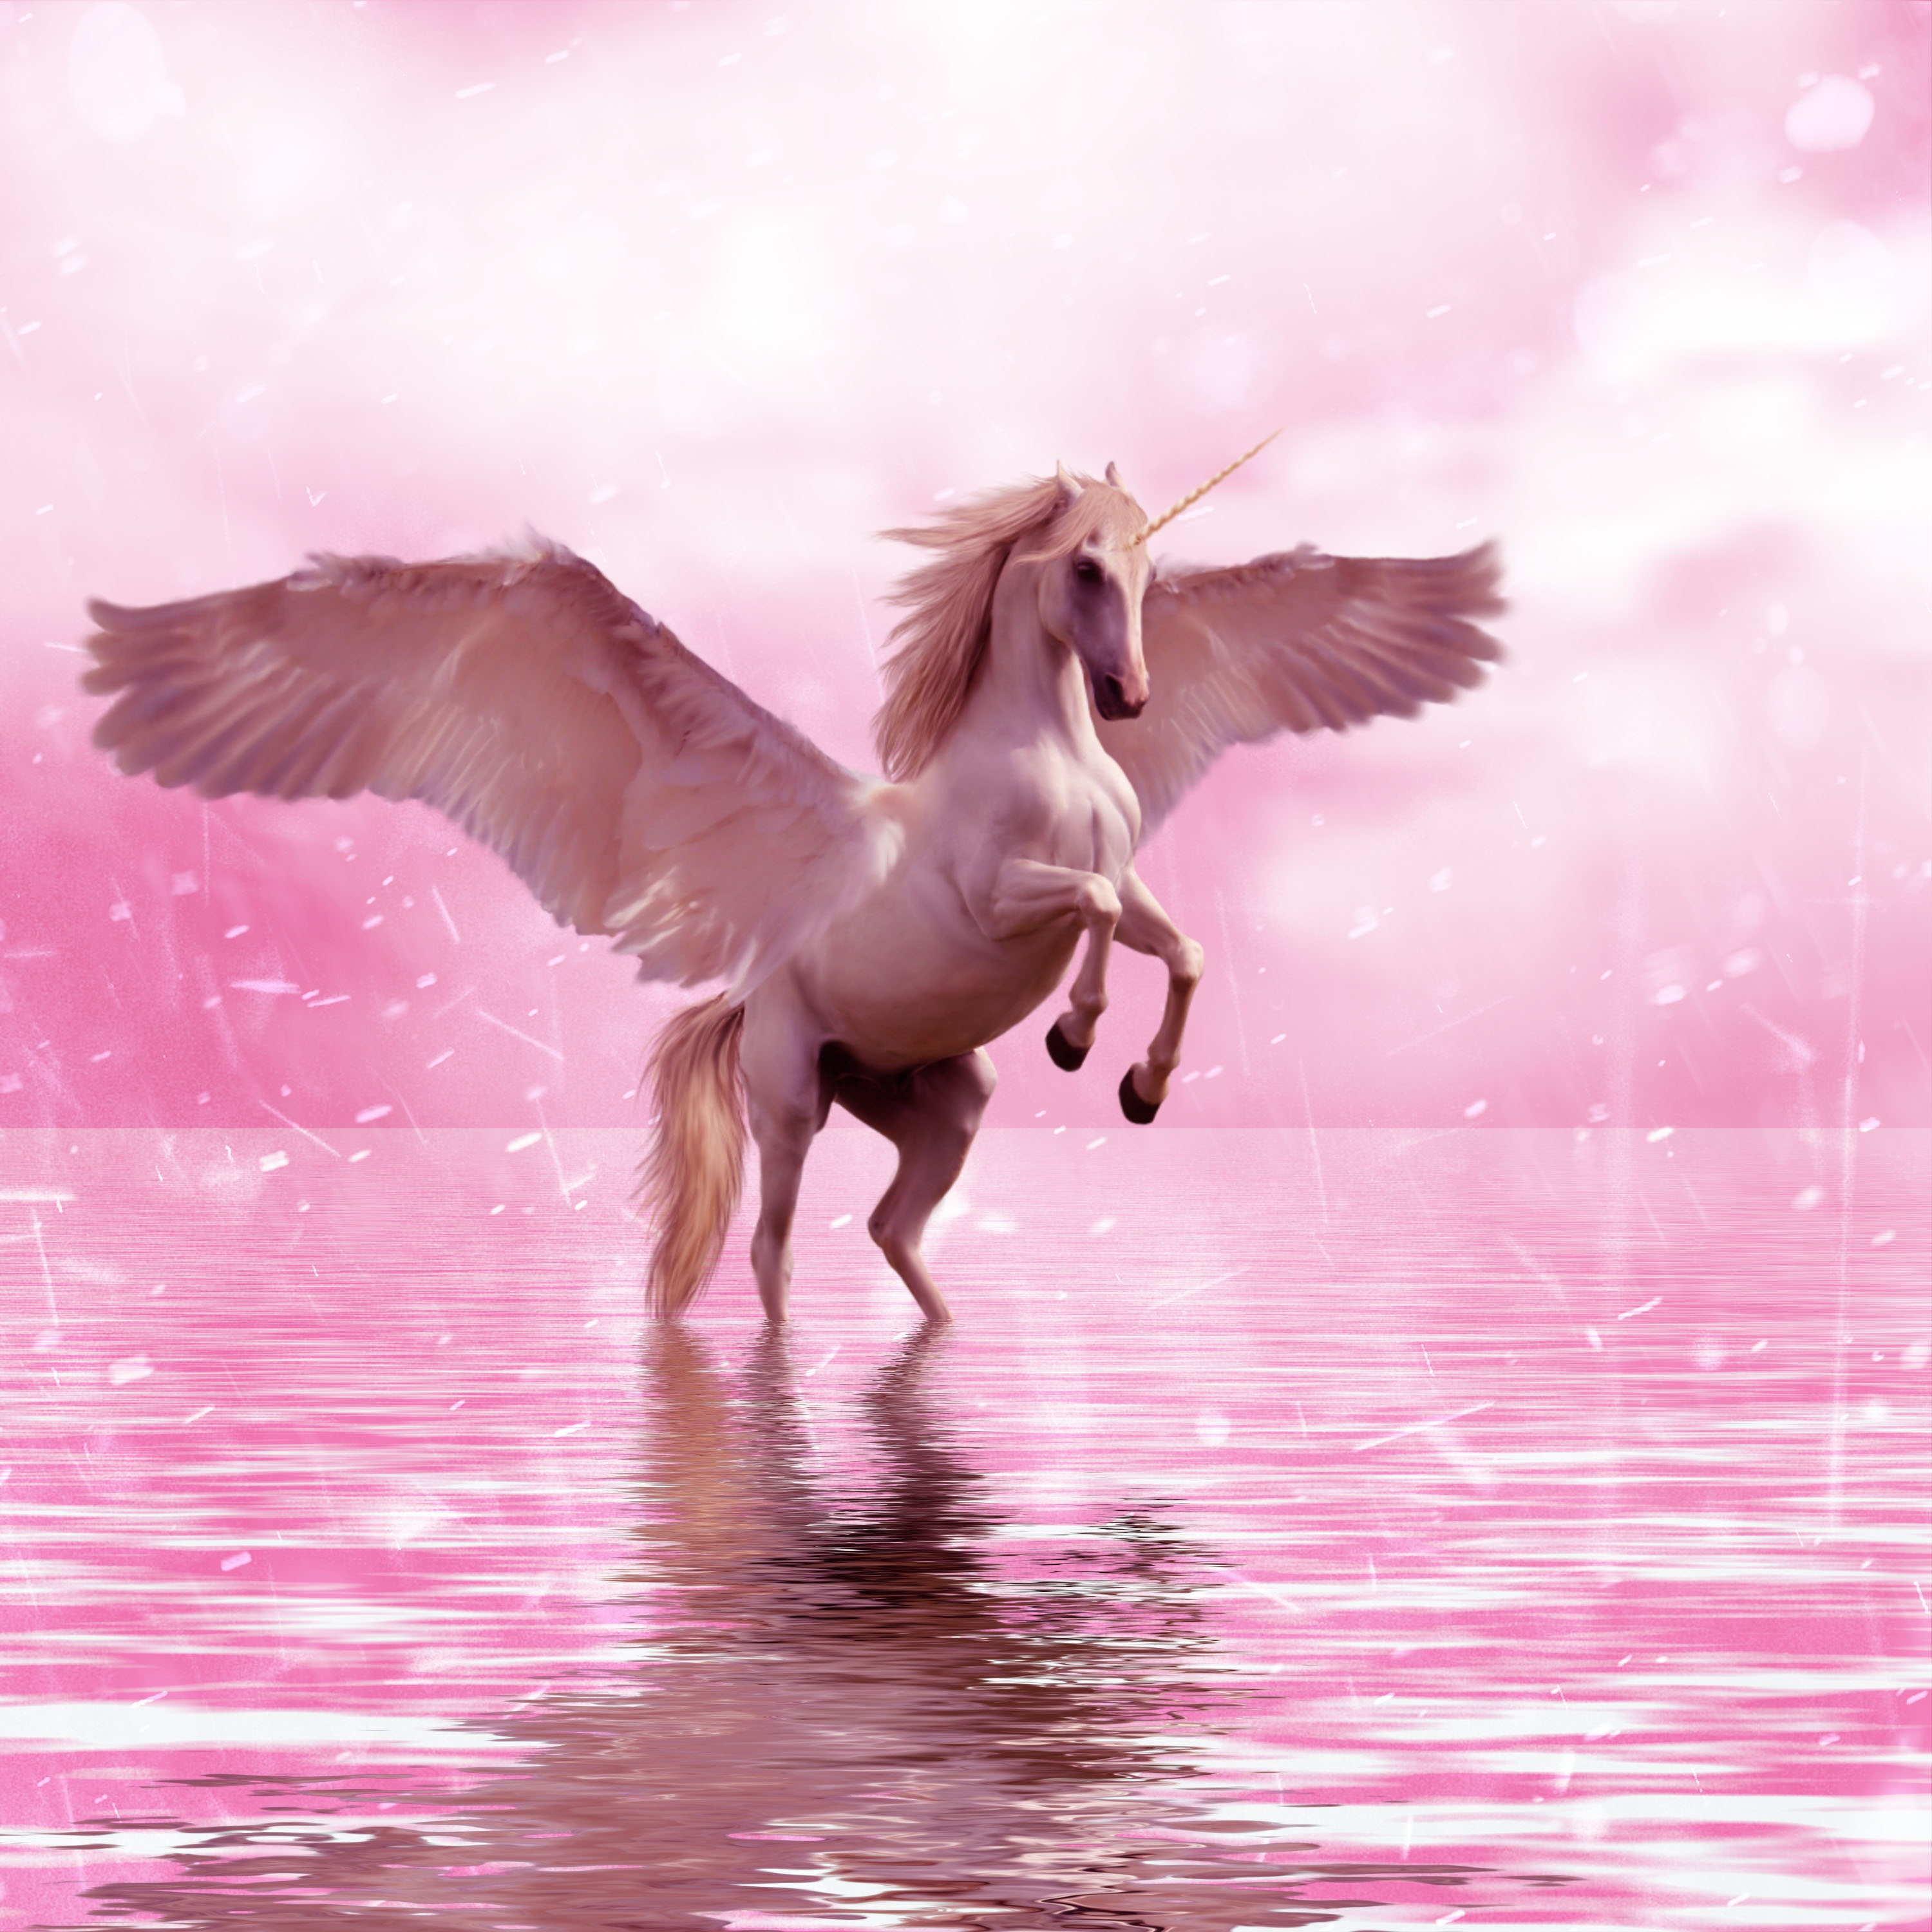 83534 download wallpaper Fantasy, Unicorn, Wings, Horse screensavers and pictures for free